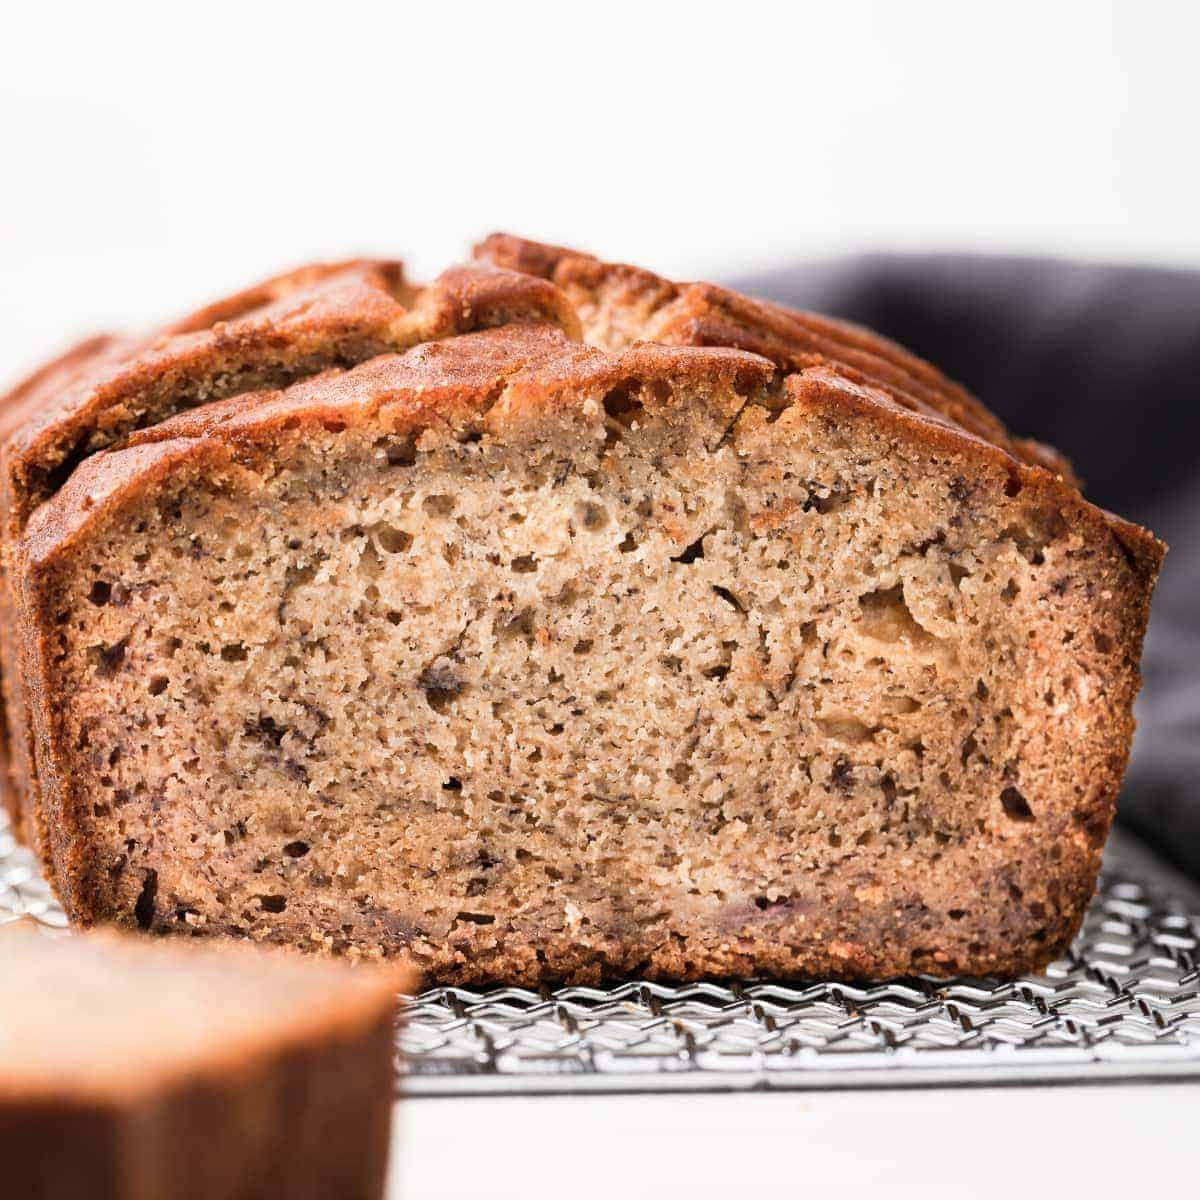 close up of a slice of banana bread make with gluten free flour